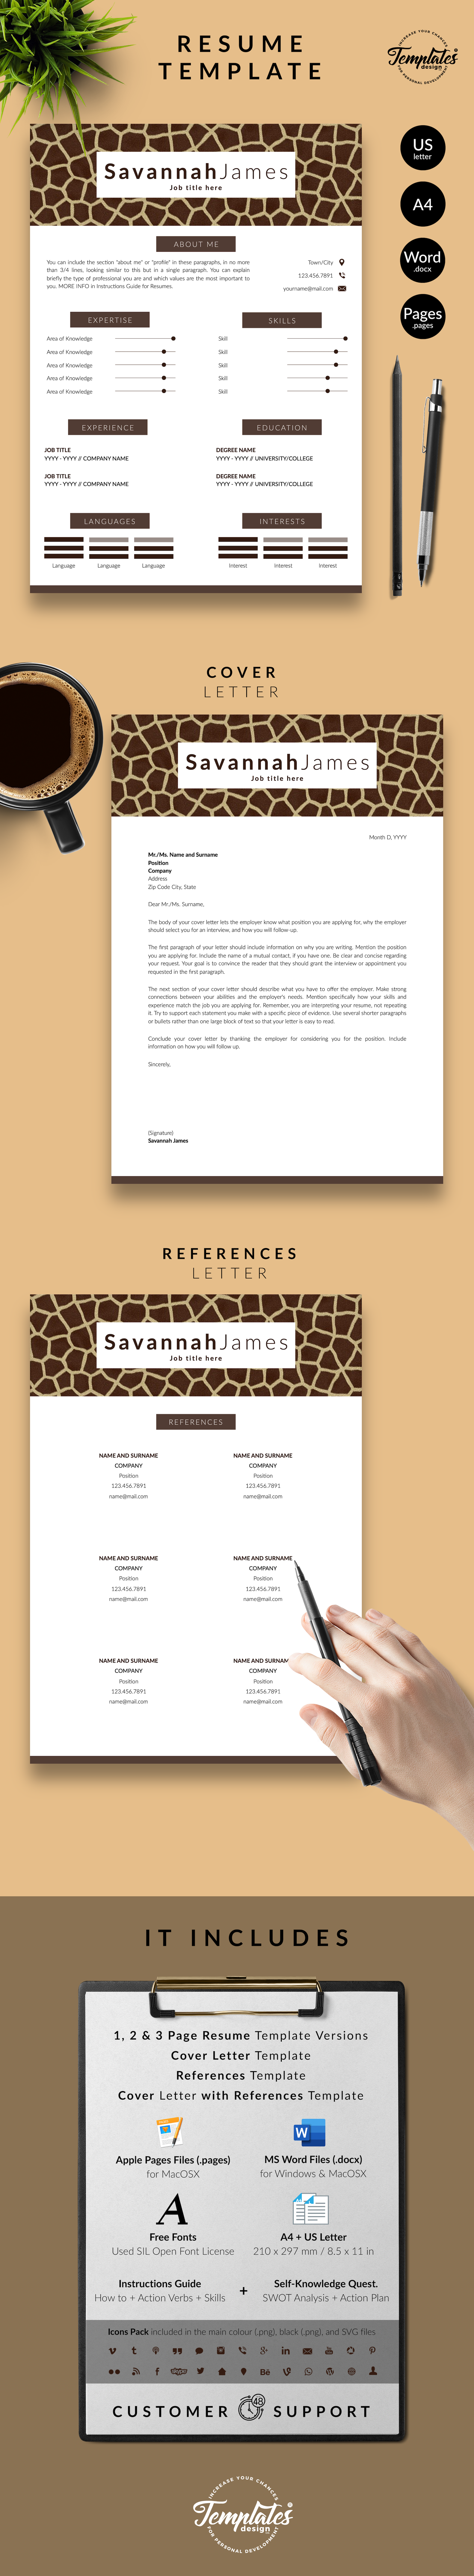 Zoologist Resume Template For Word Pages Animal Care Cv For Veterinarian Animal Curator Cv 1 2 And 3 Pages Resume Instant Download Resume Template Word Resume Template Creative Resume Templates